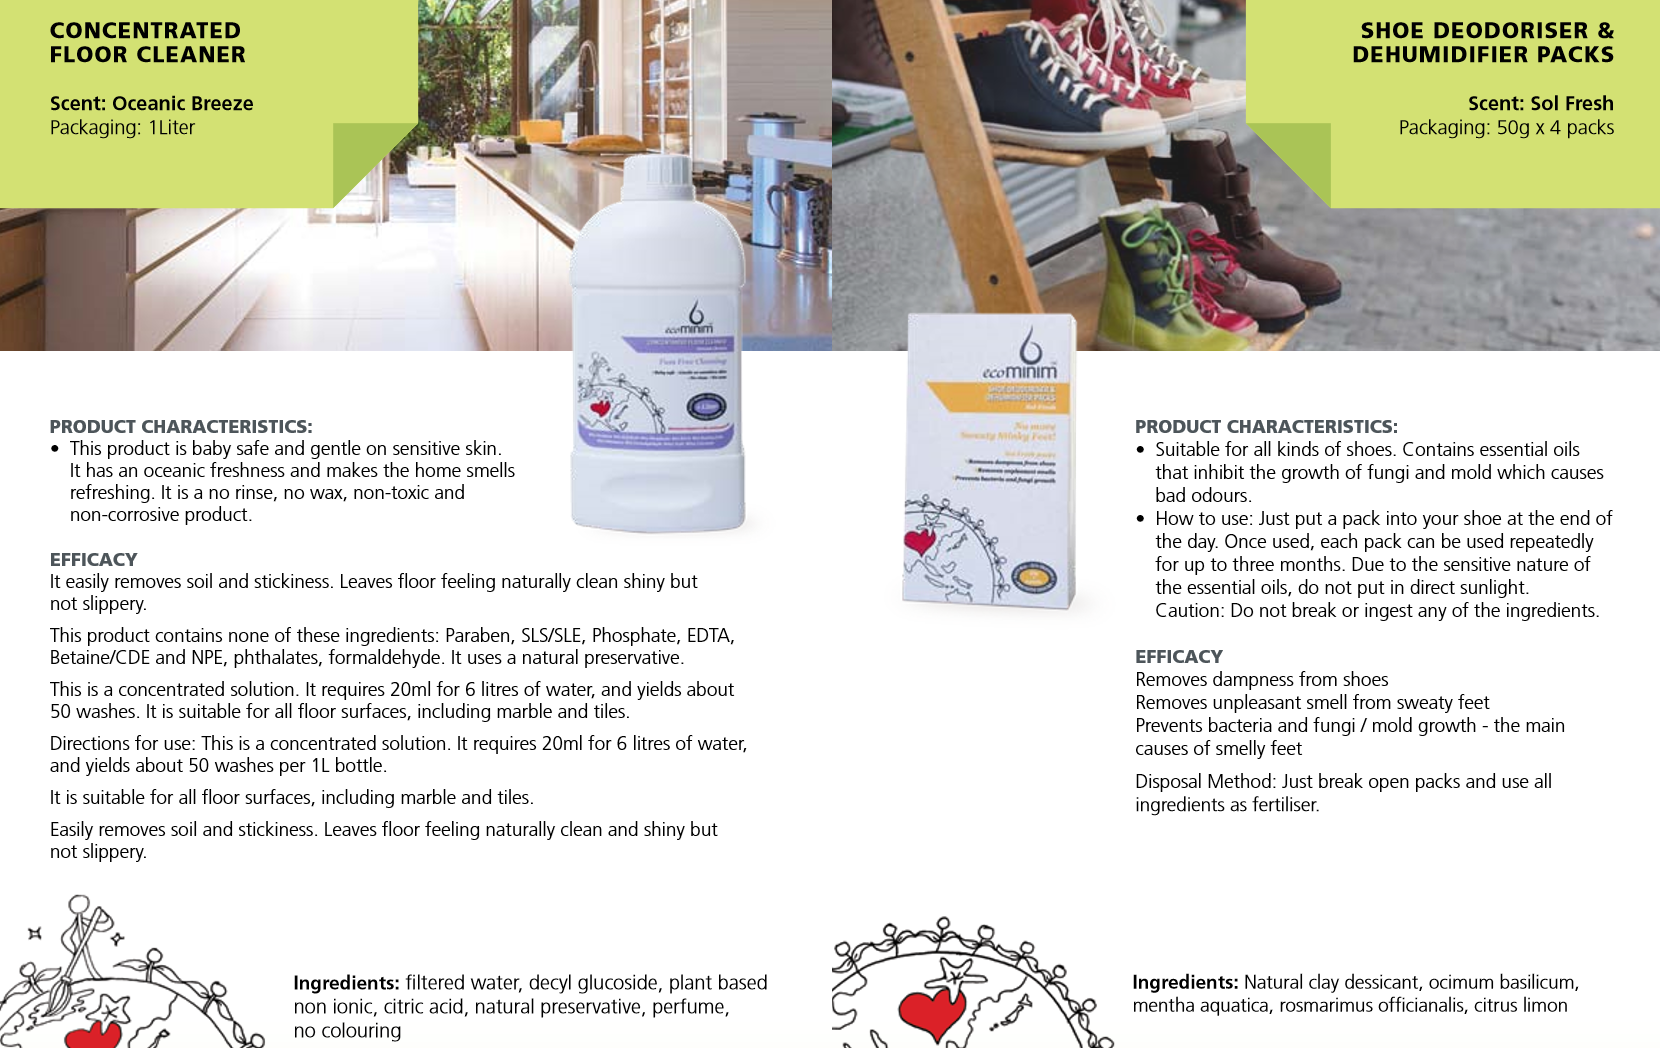 Ecominim Floor Cleaner & Shoe Deodorizer